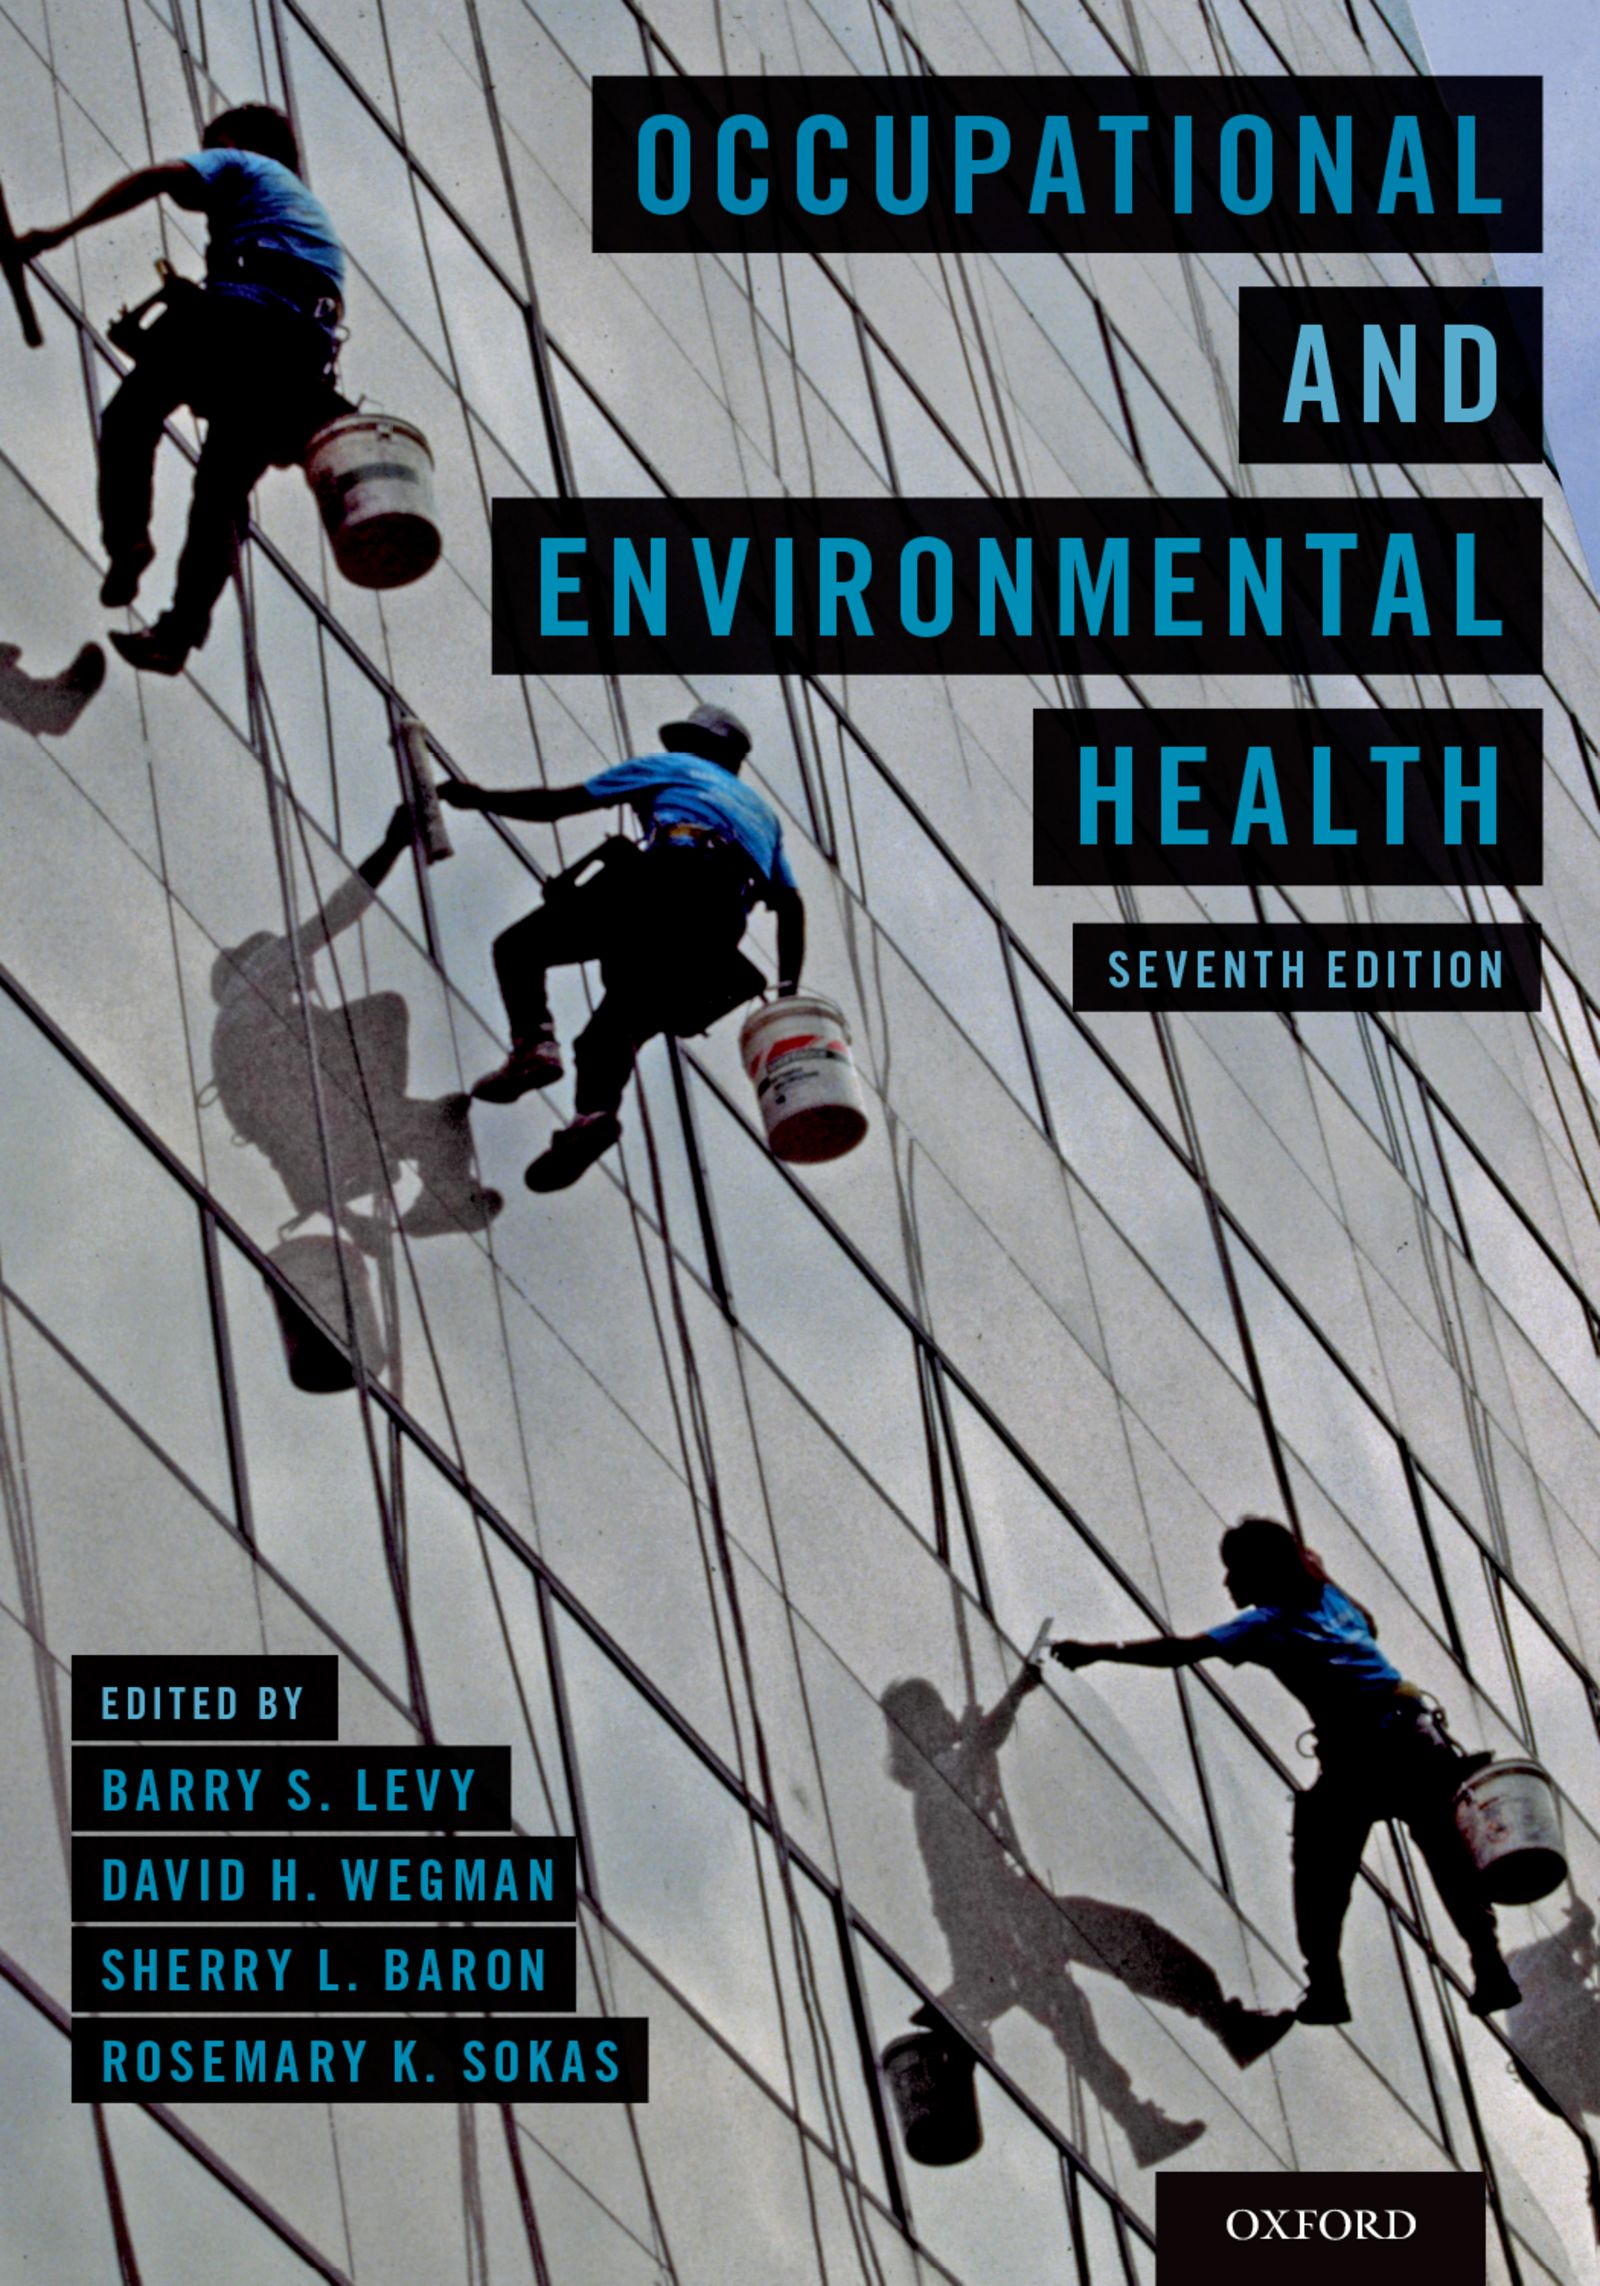 New editions now available in occupational and environmental assistants and hygienists retains core fundamentals presented in earlier editions that focus on an in depth study of key principles while expanding and fandeluxe Choice Image